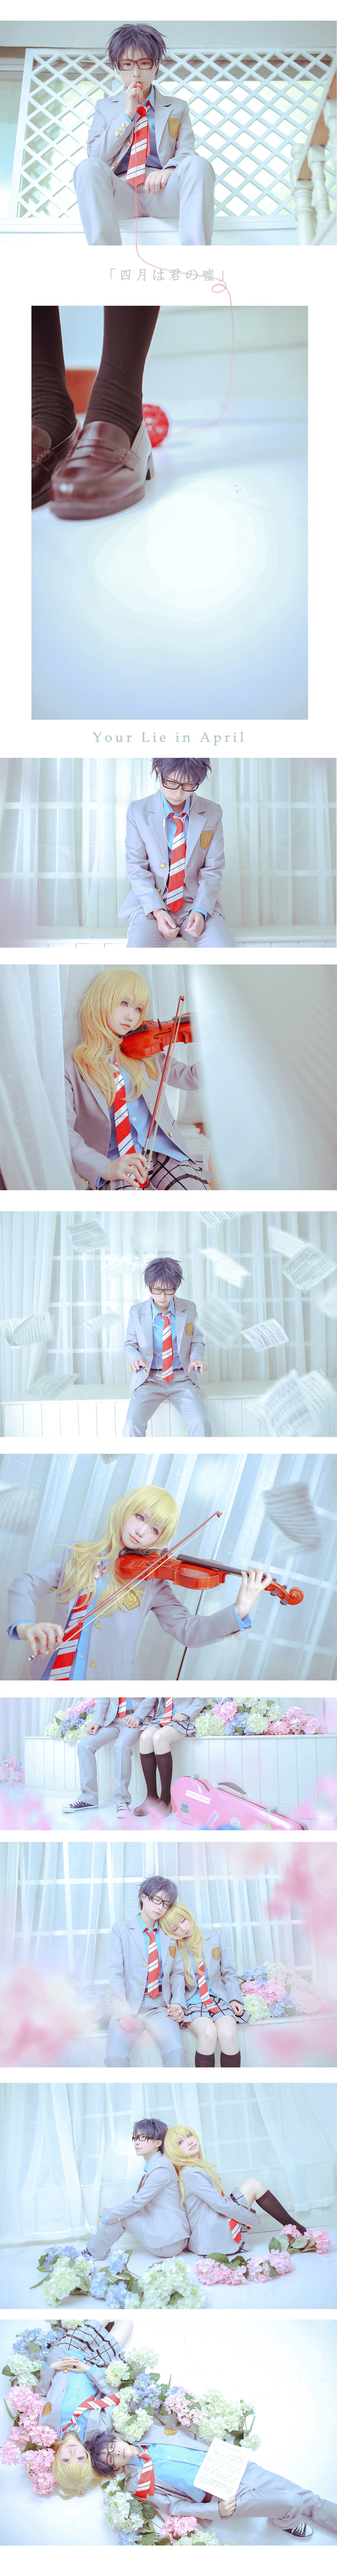 Cosplayers Recreate Beautiful Your Lie in April Photos 4